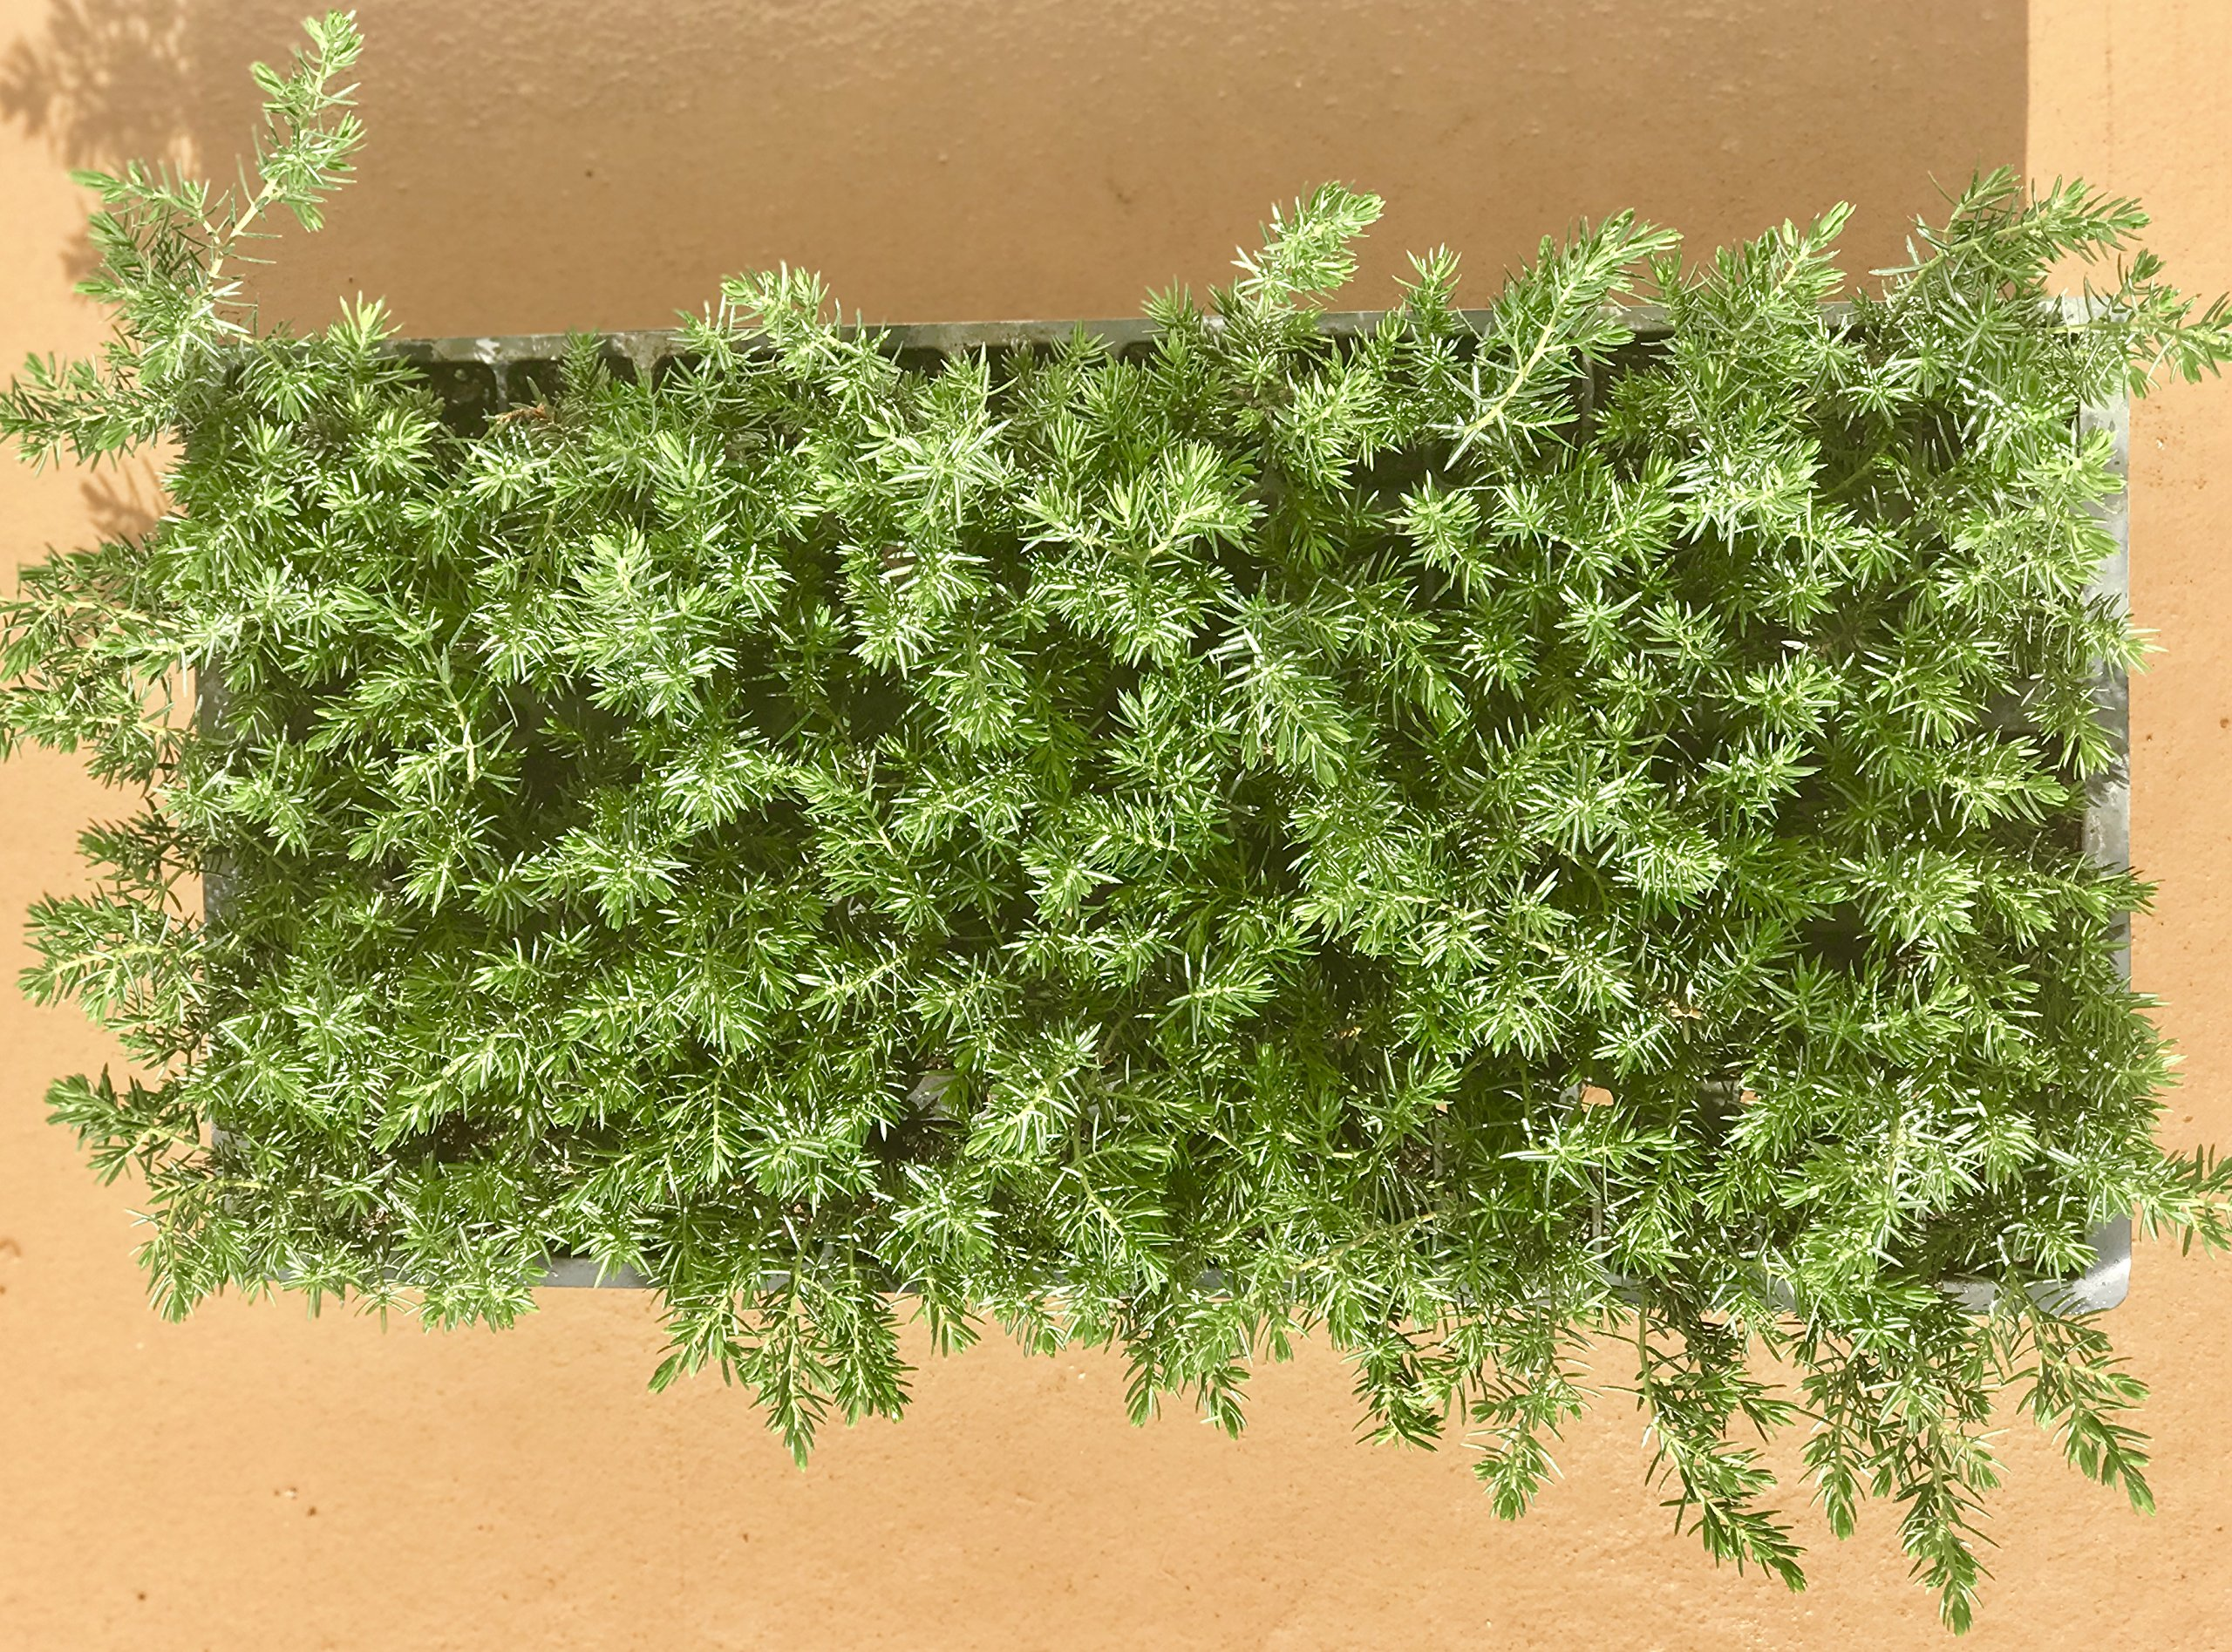 Juniper Blue Pacific Qty 30 Live Plants Evergreen Ground Cover 'Shore Juniper' by Florida Foliage (Image #5)